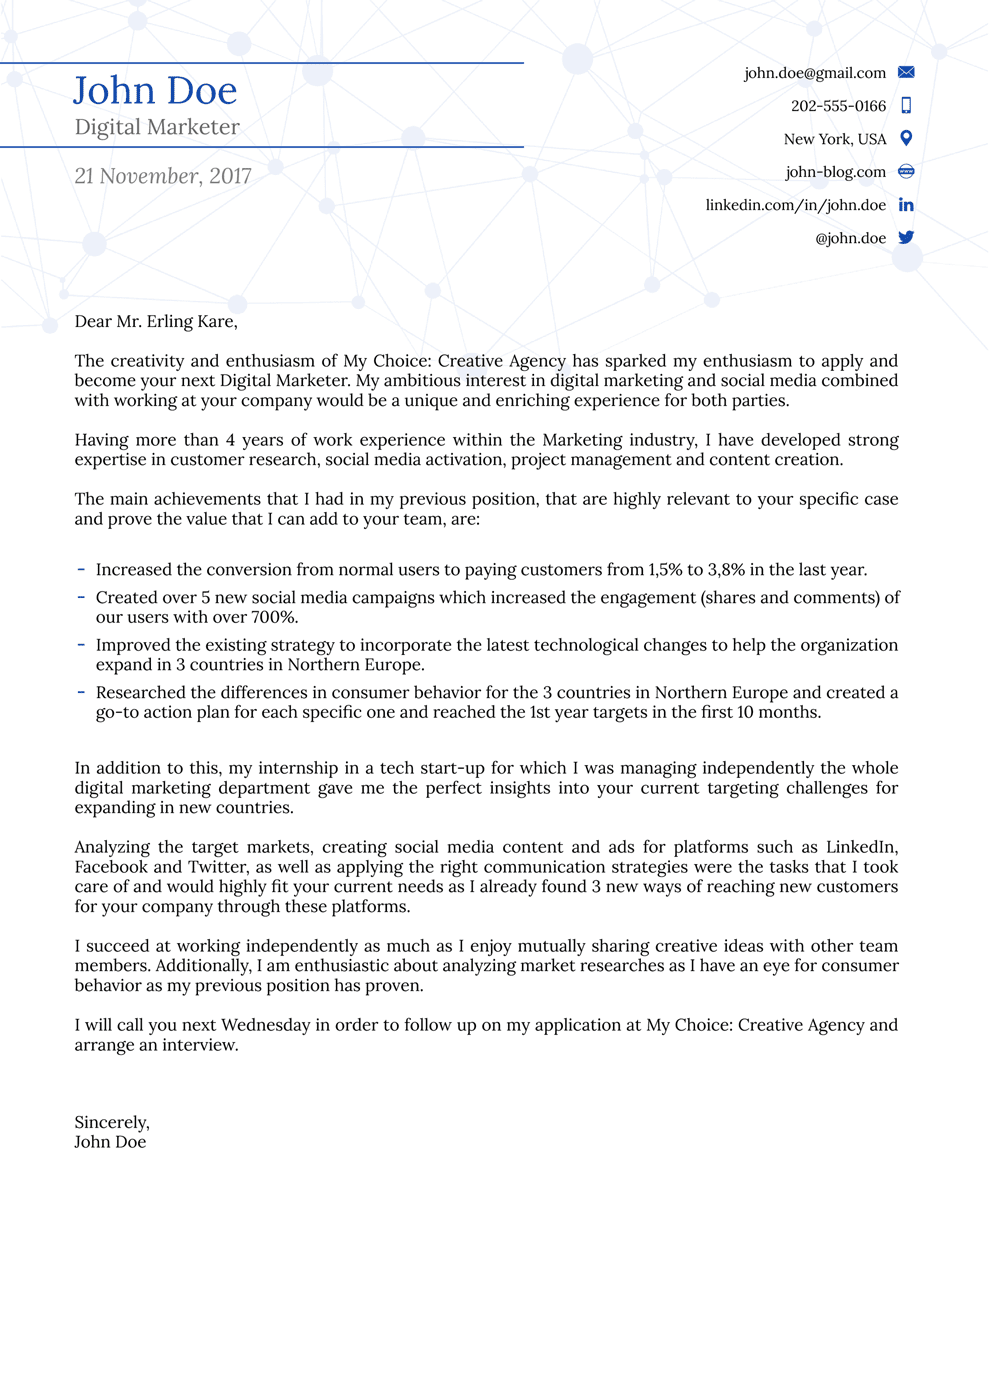 College Cover Letter Template